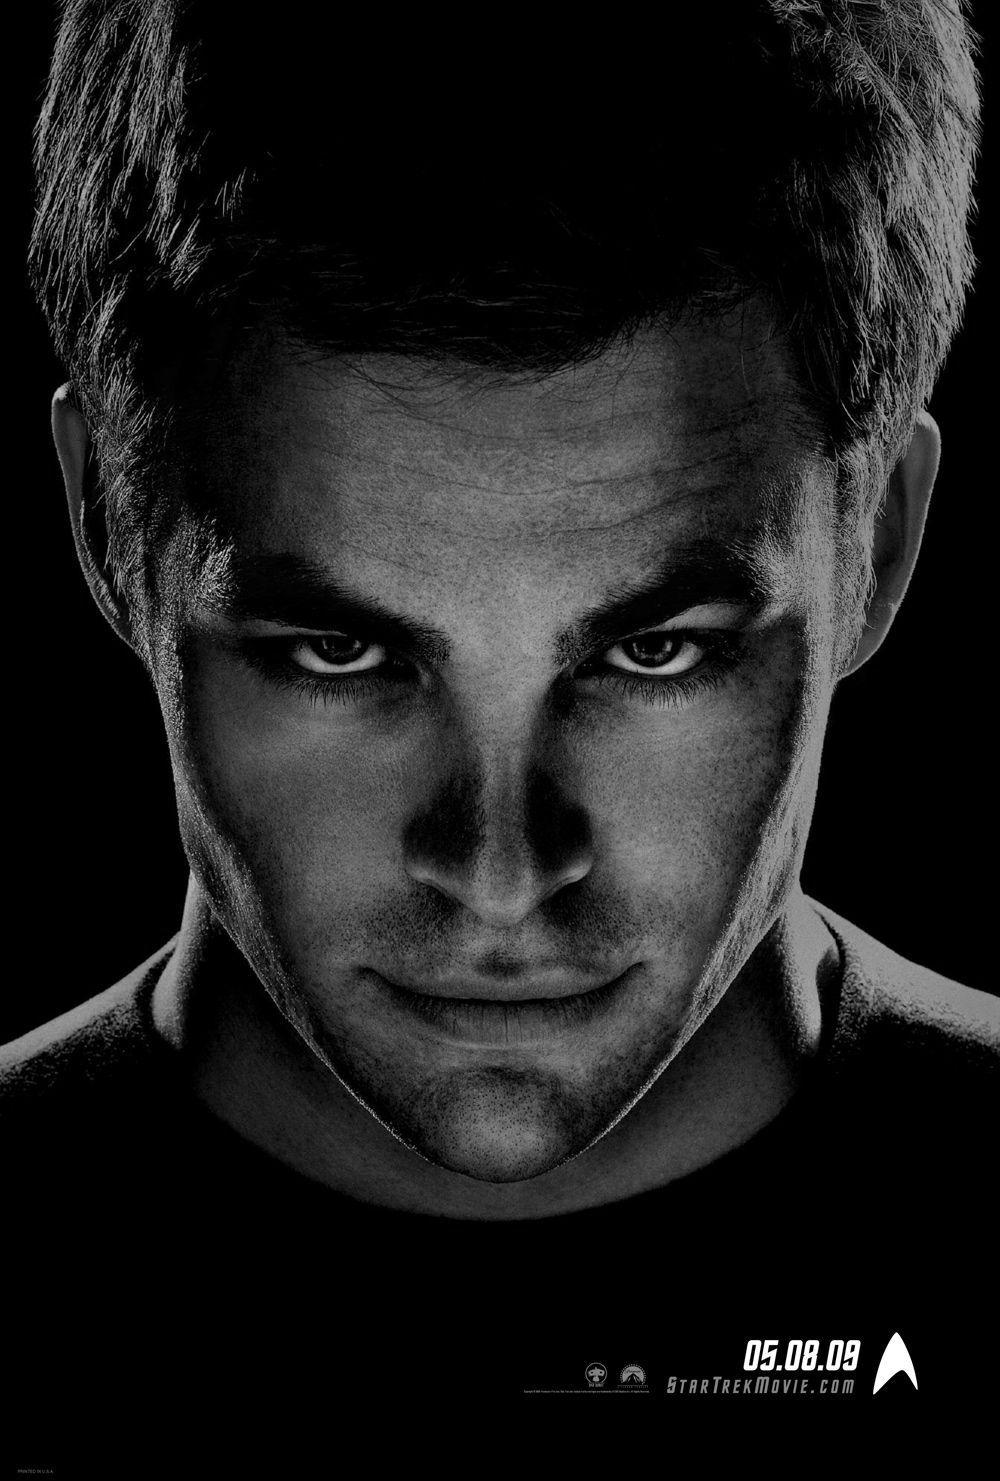 Star Trek  11 - Inizio - Begin  - Chris Pine - Cap. James T. Kirk